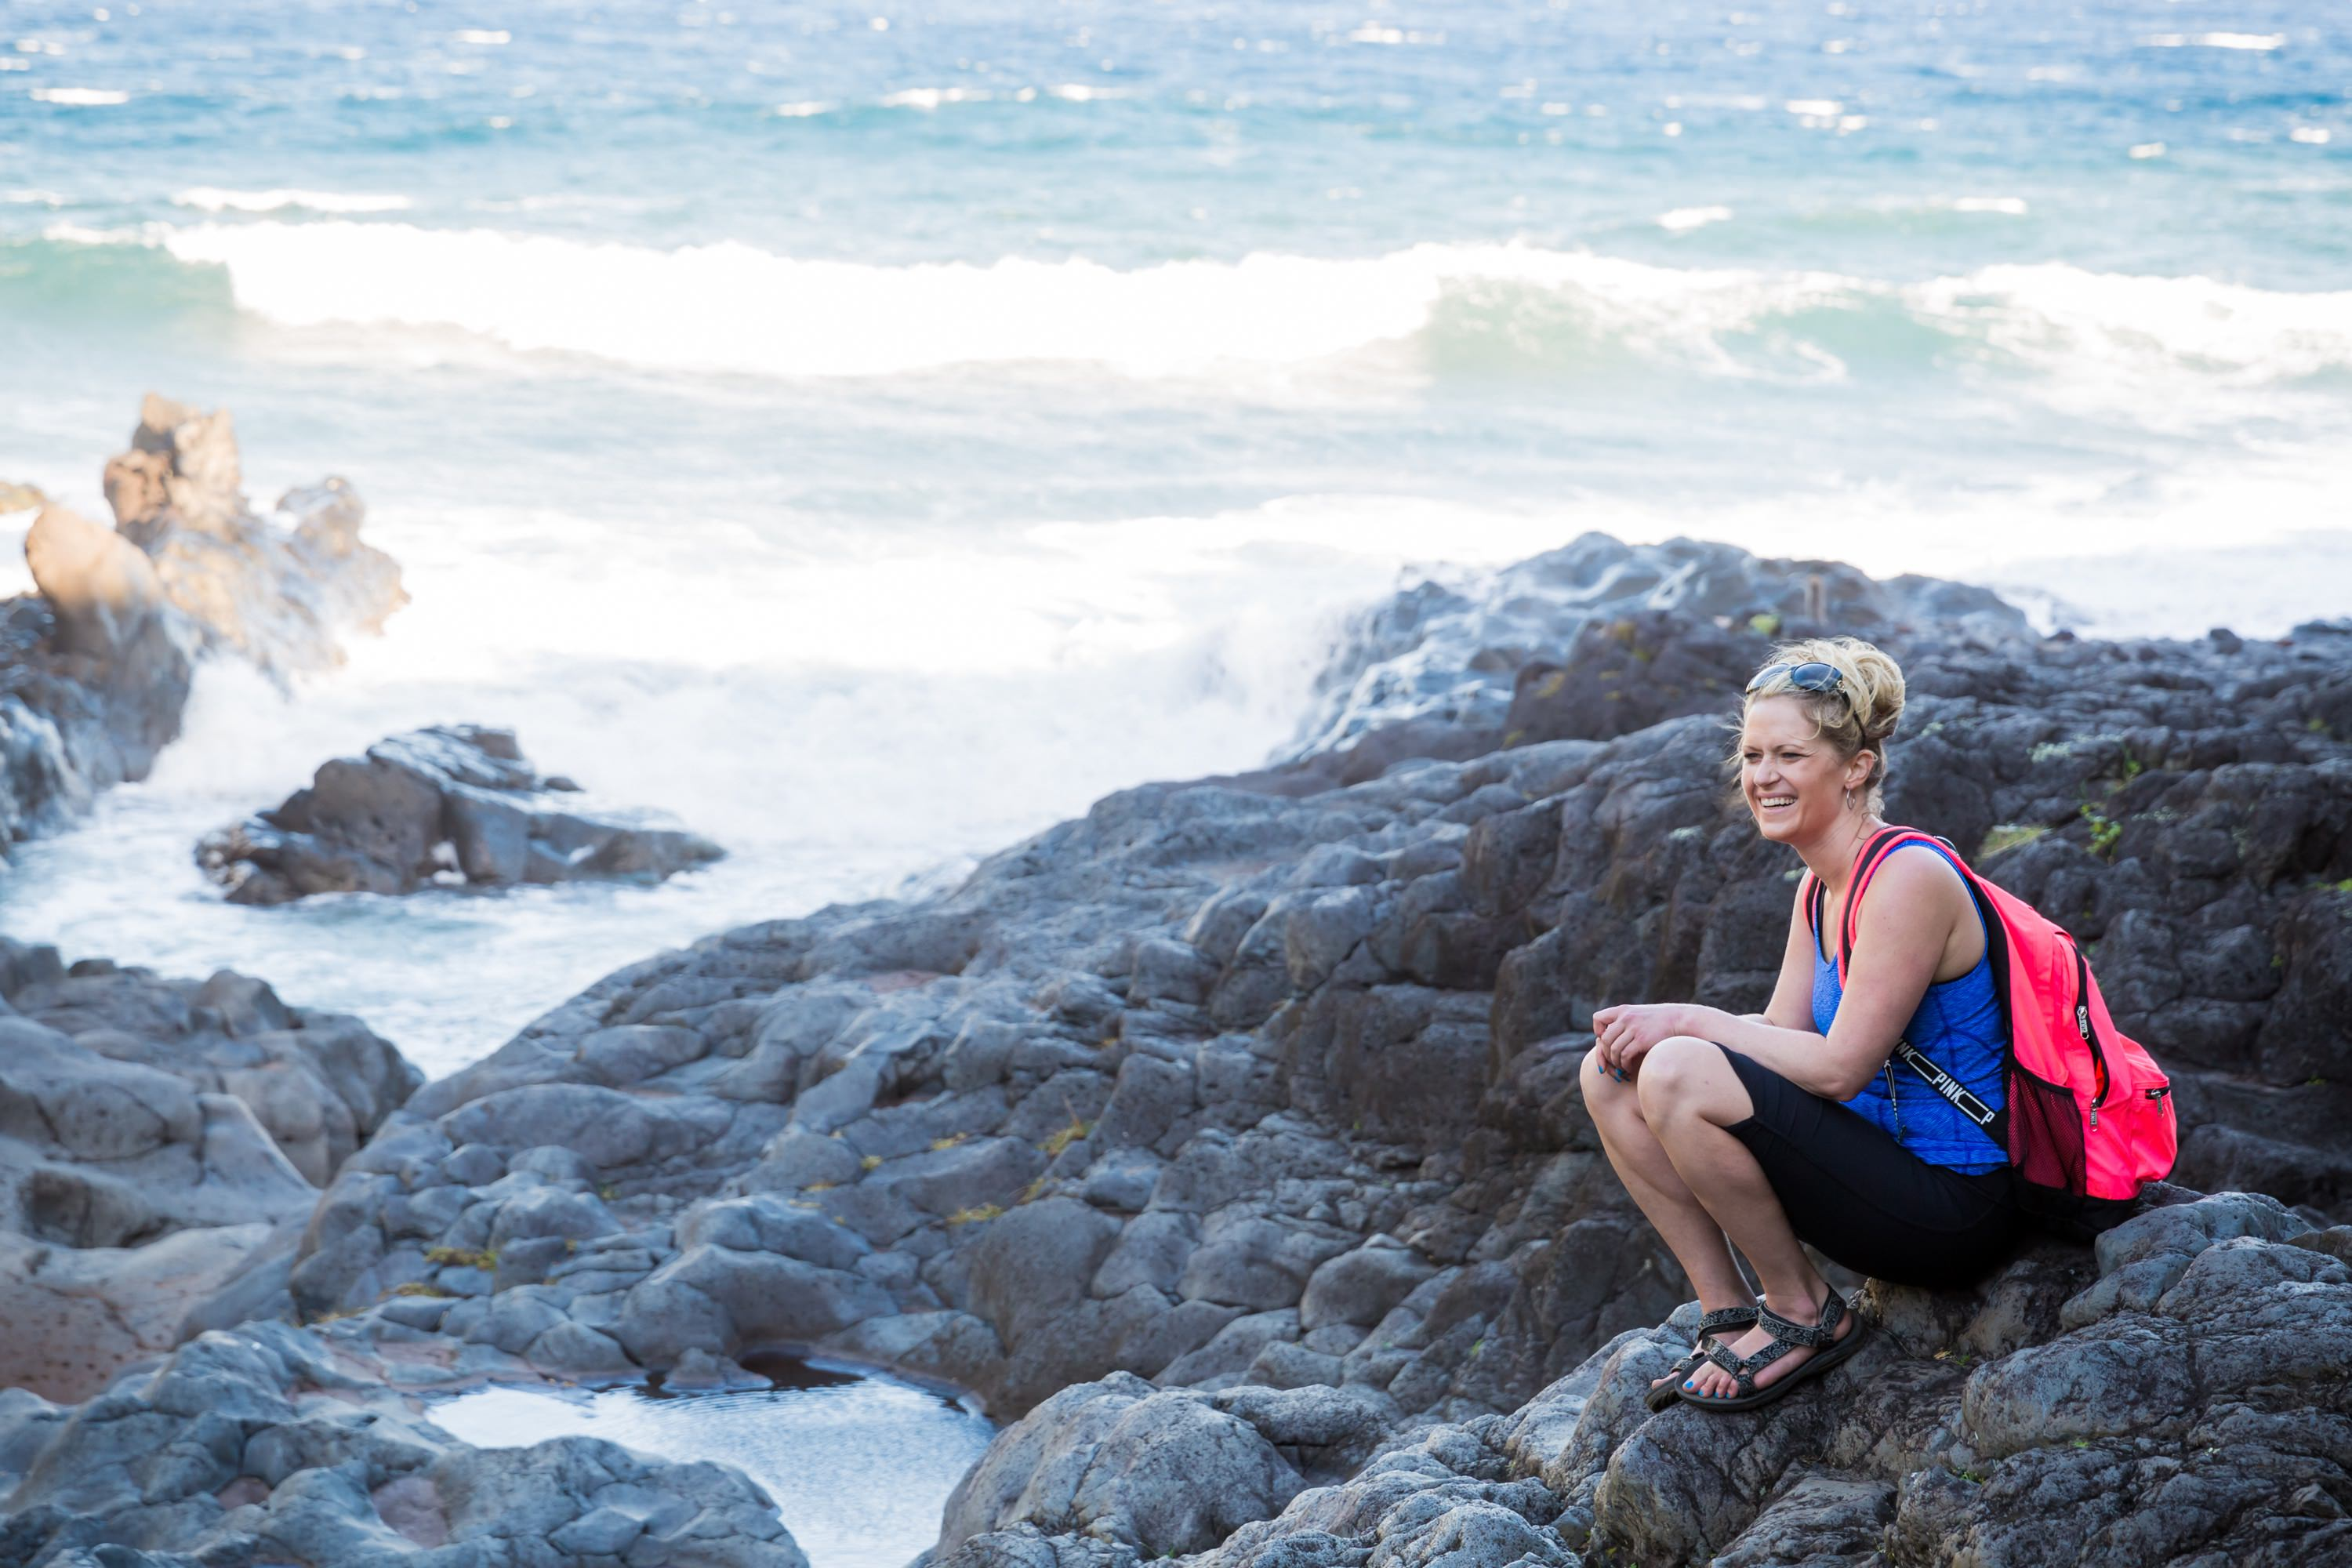 03_012_011015_Hana-Maui-Yoga-Retreat_Nicole-Goddard-Photography_NMG_6932